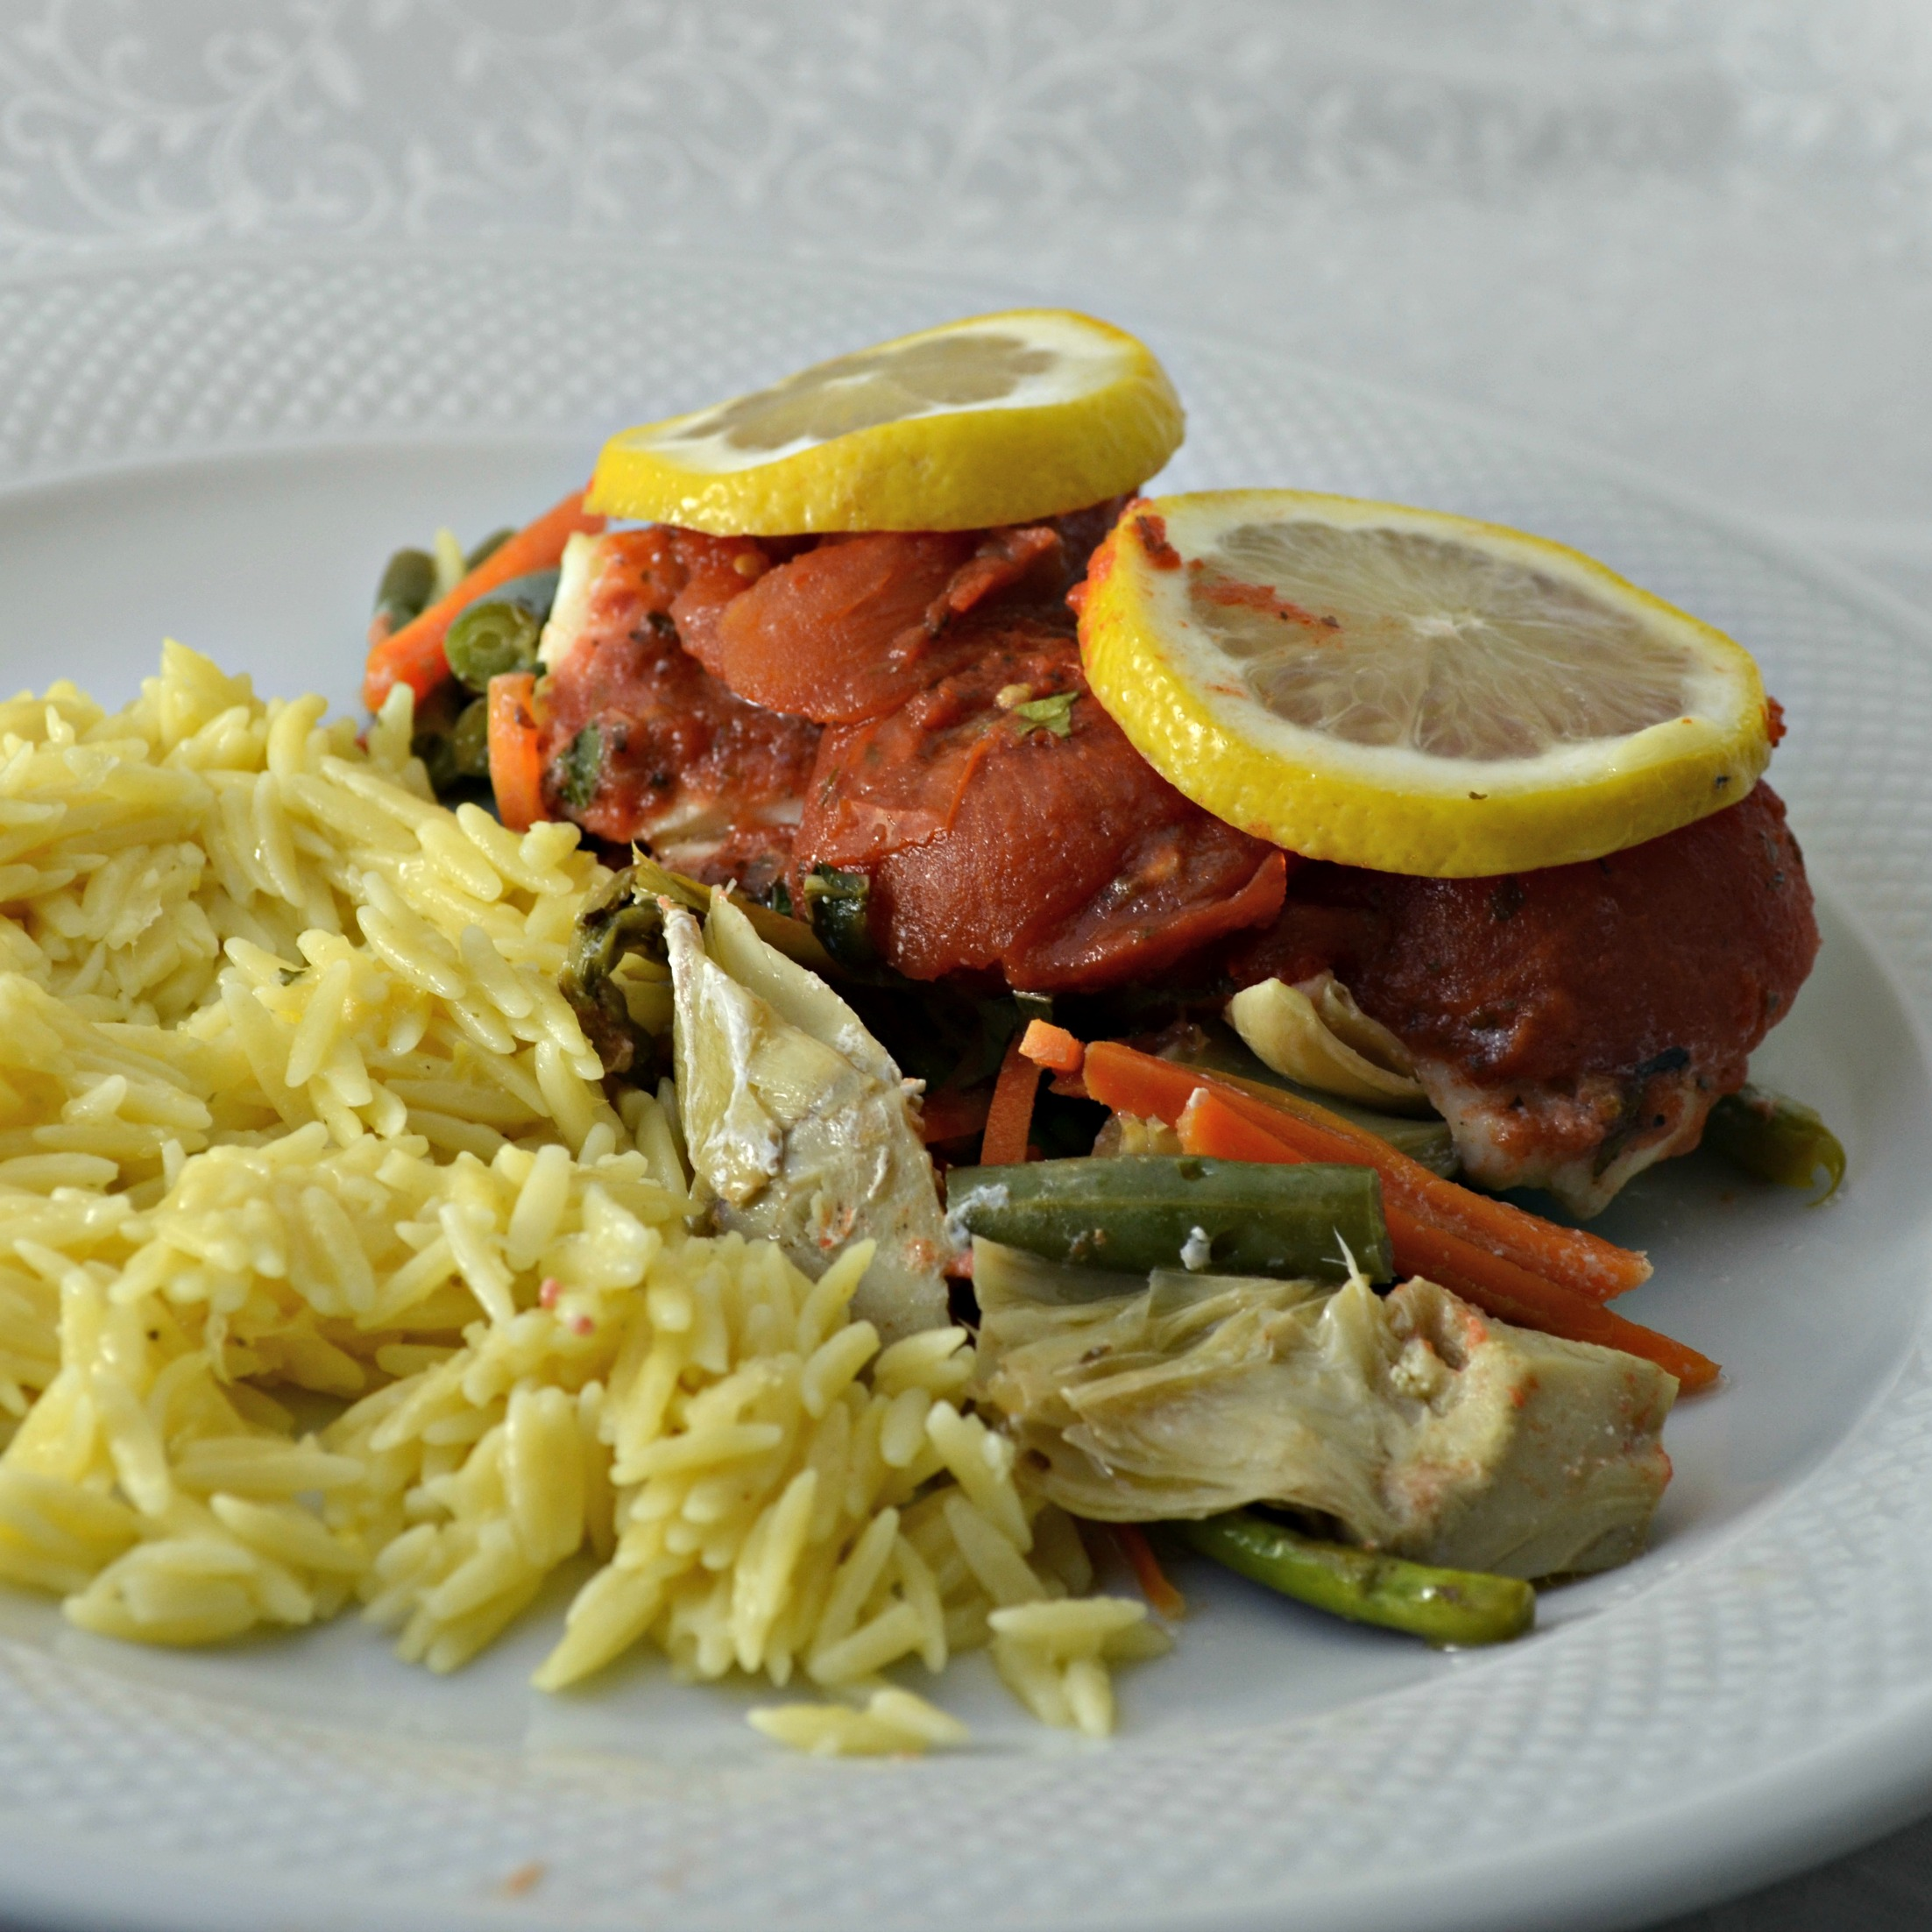 Red Lobster(R) Oven-Roasted Tilapia with Vegetables